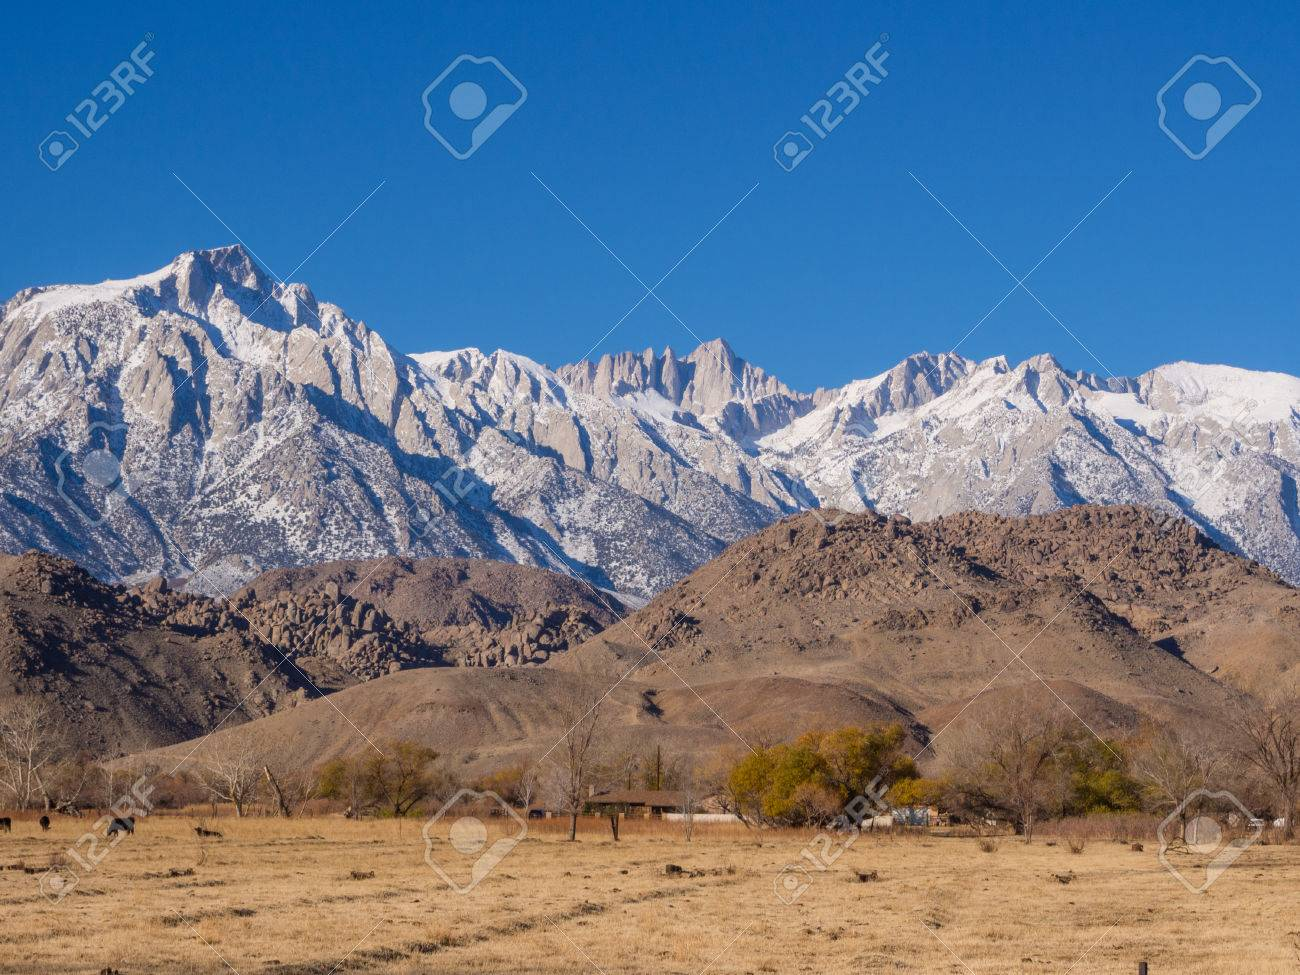 Stock Photo - View of Mt Whitney from US Route 395 in Lone Pine, CA.